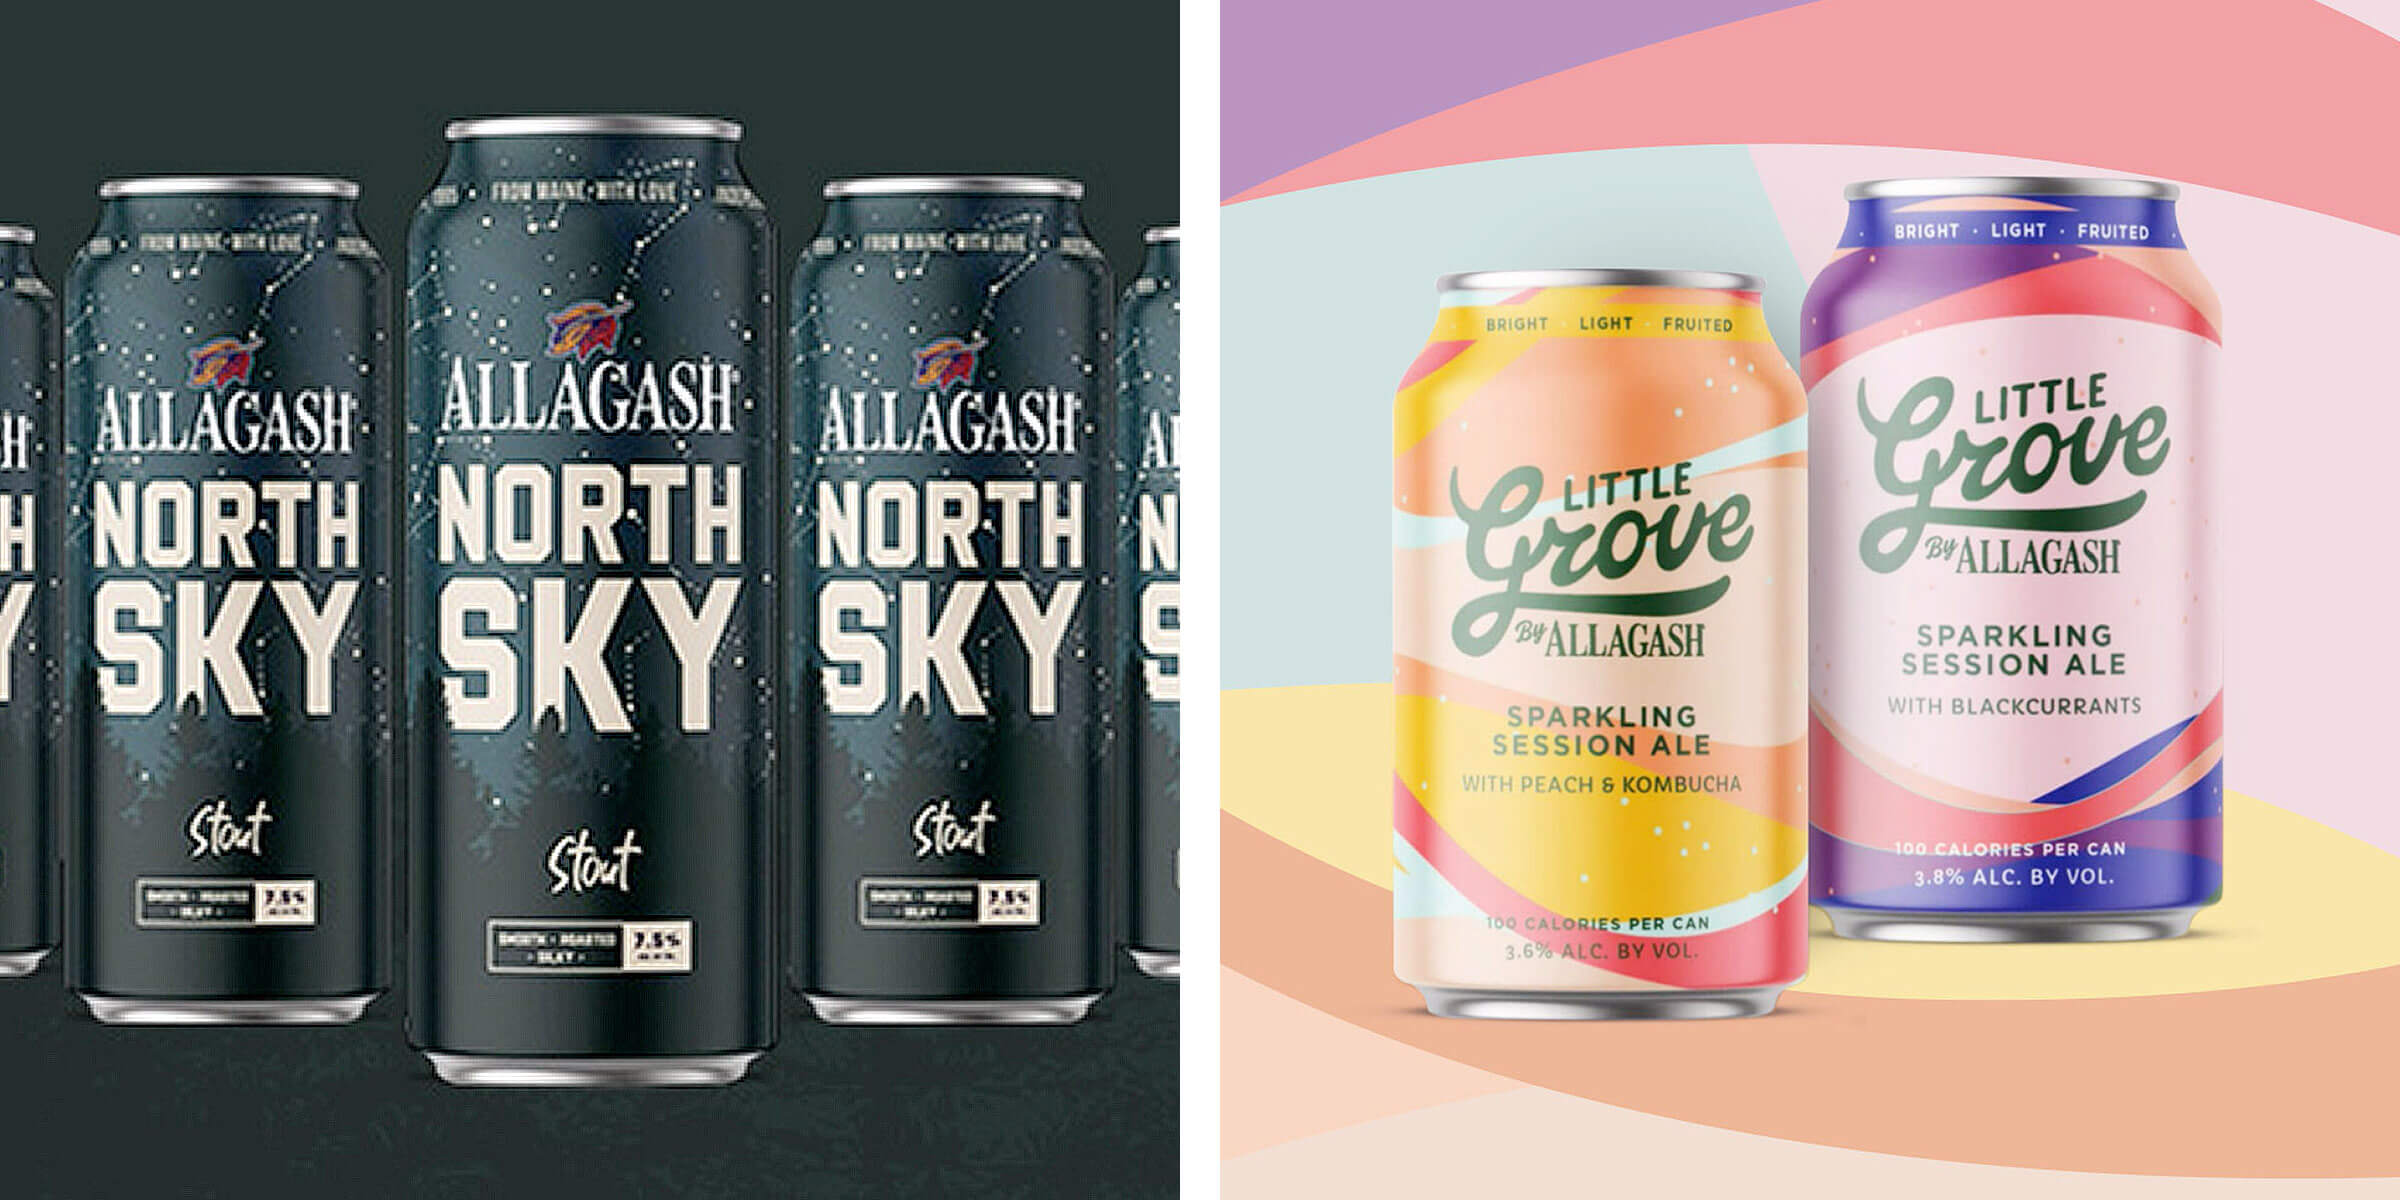 Allagash Brewing Company will add the Little Grove Sparkling Session Ale and the Night Sky Belgian-style Stout to their year-round core lineup.